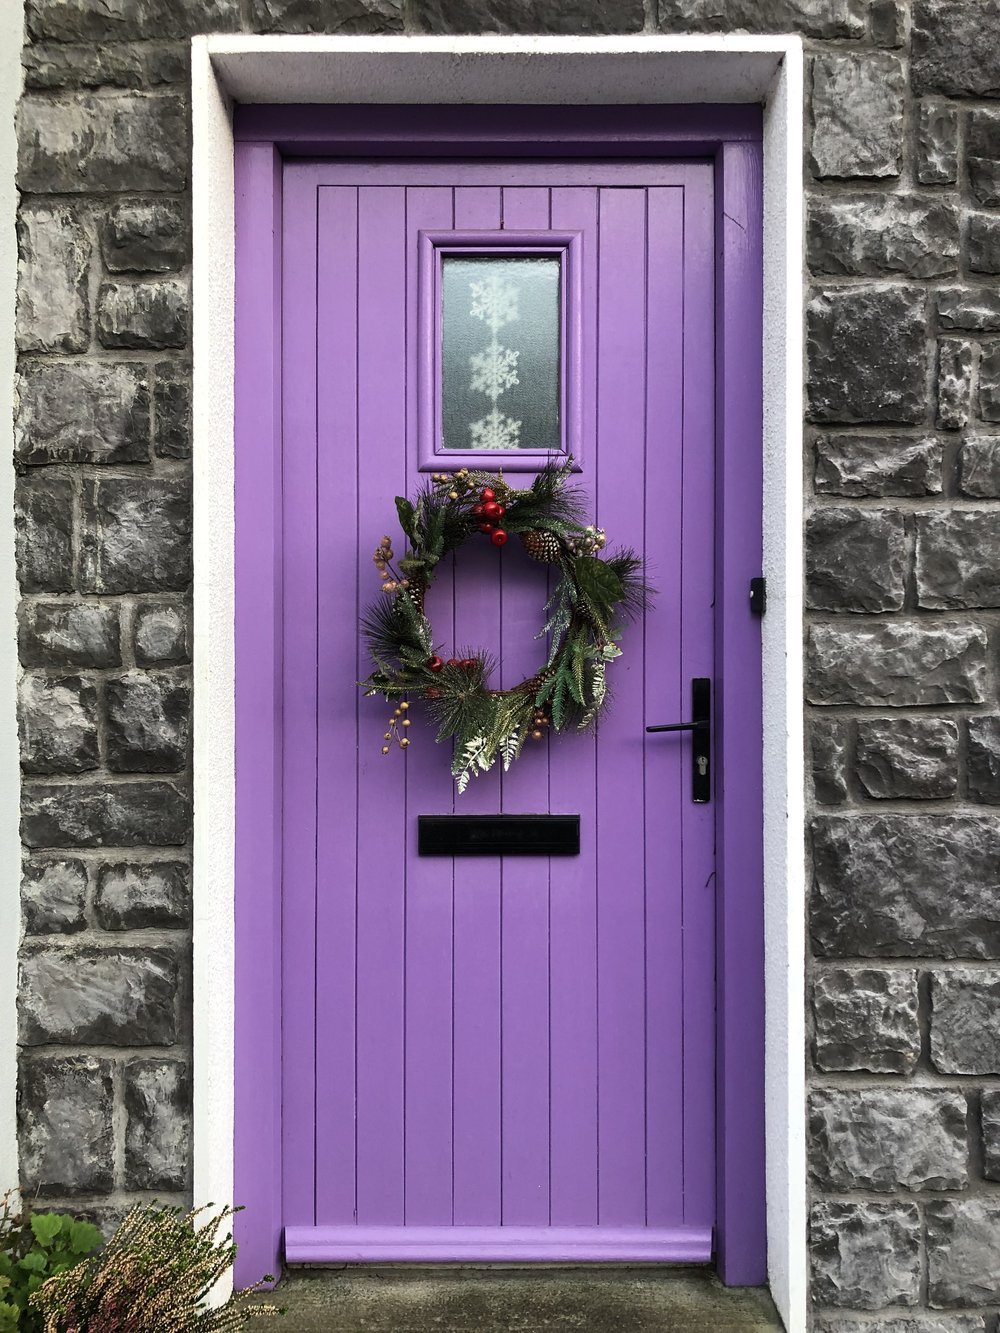 Beautifully painted door, there are so many in Ireland, I love the pop of colour!